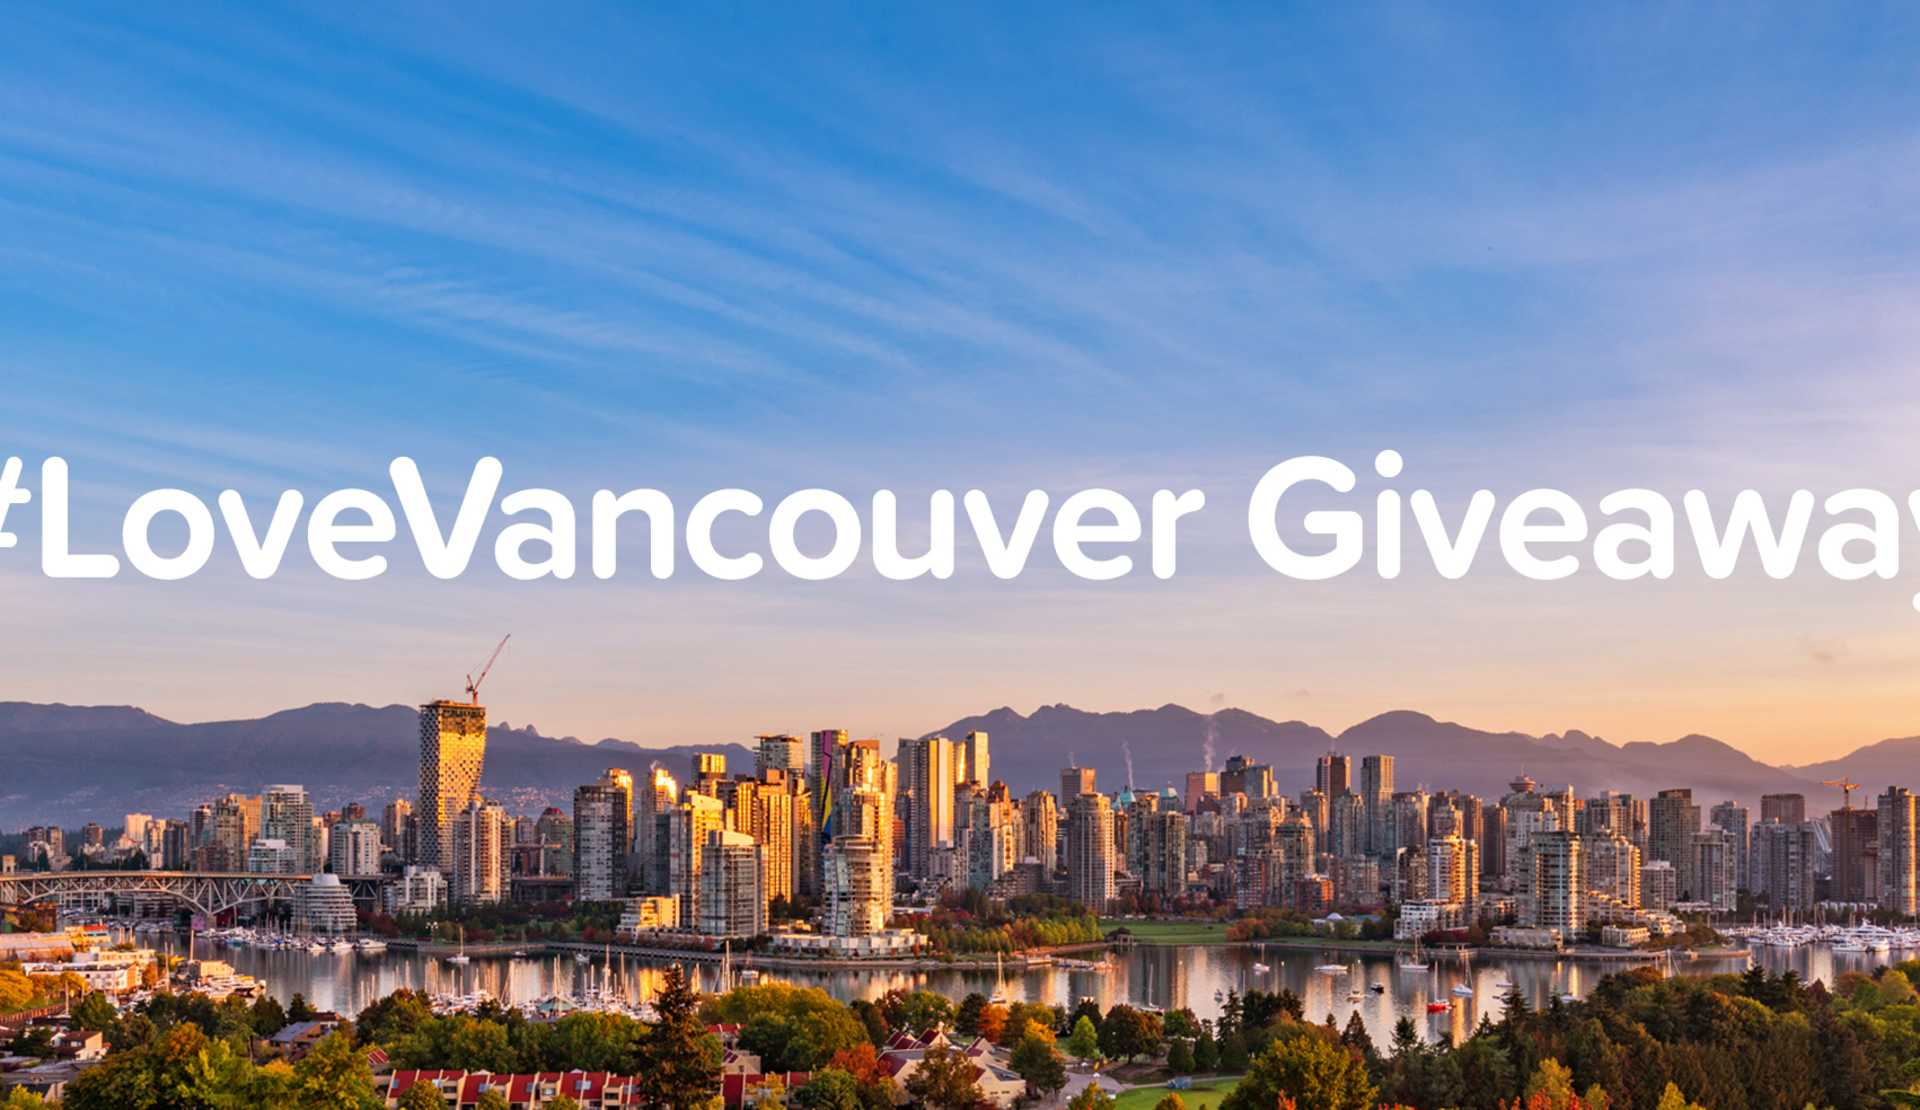 #LoveVancouver Giveaway